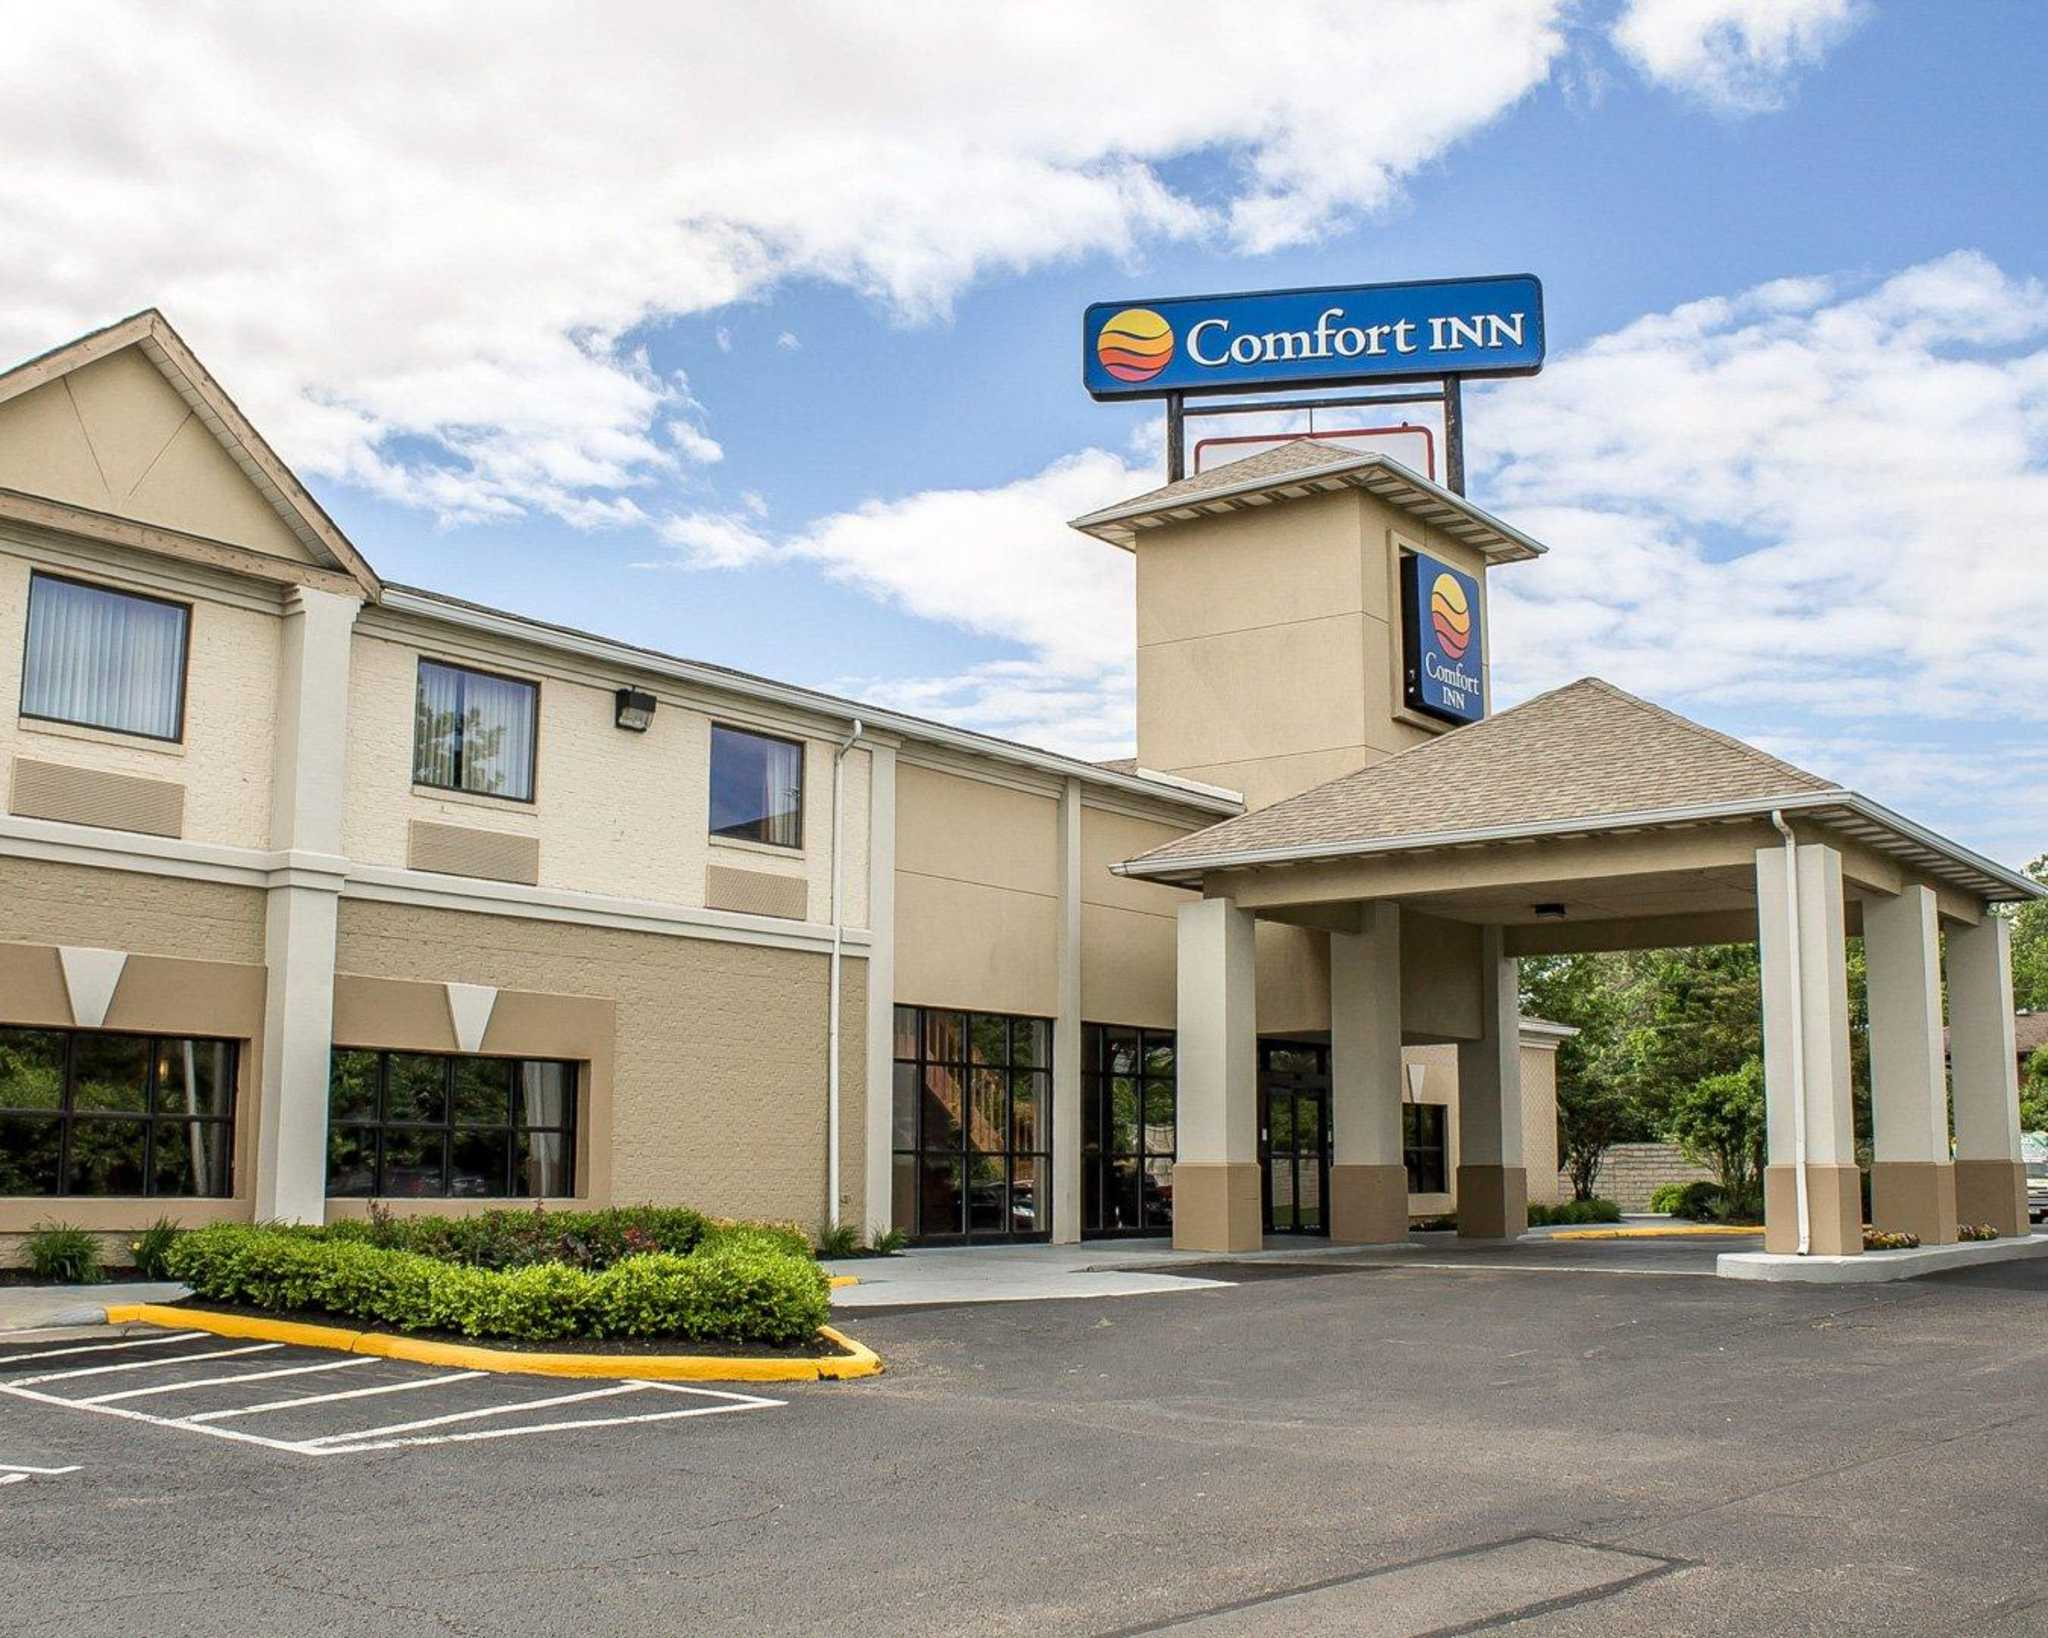 Comfort Inn North Conference Center image 1